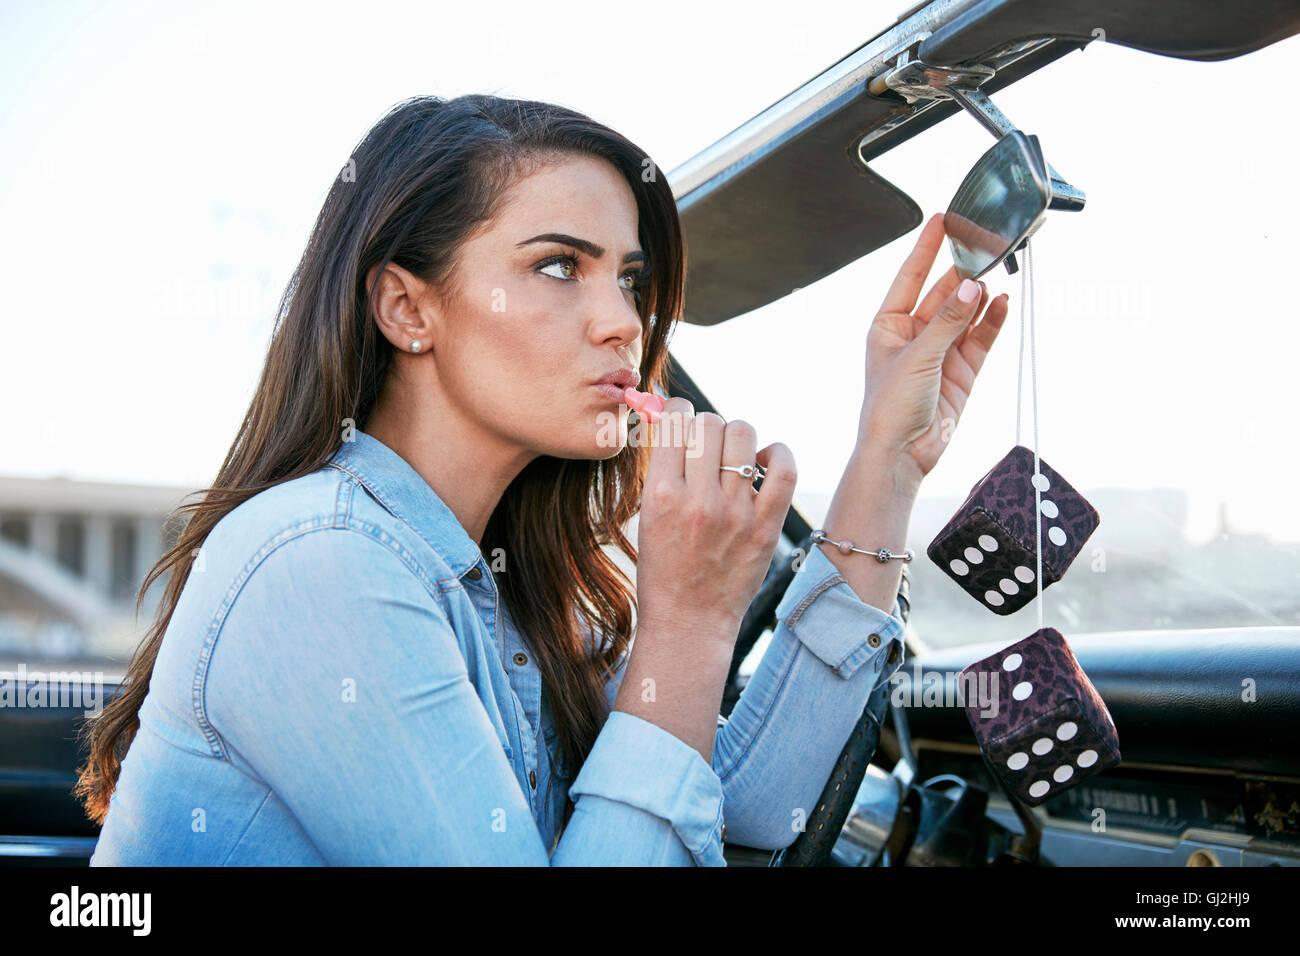 Woman in convertible car applying lipstick in rear view mirror, Los Angeles, California, USA - Stock Image